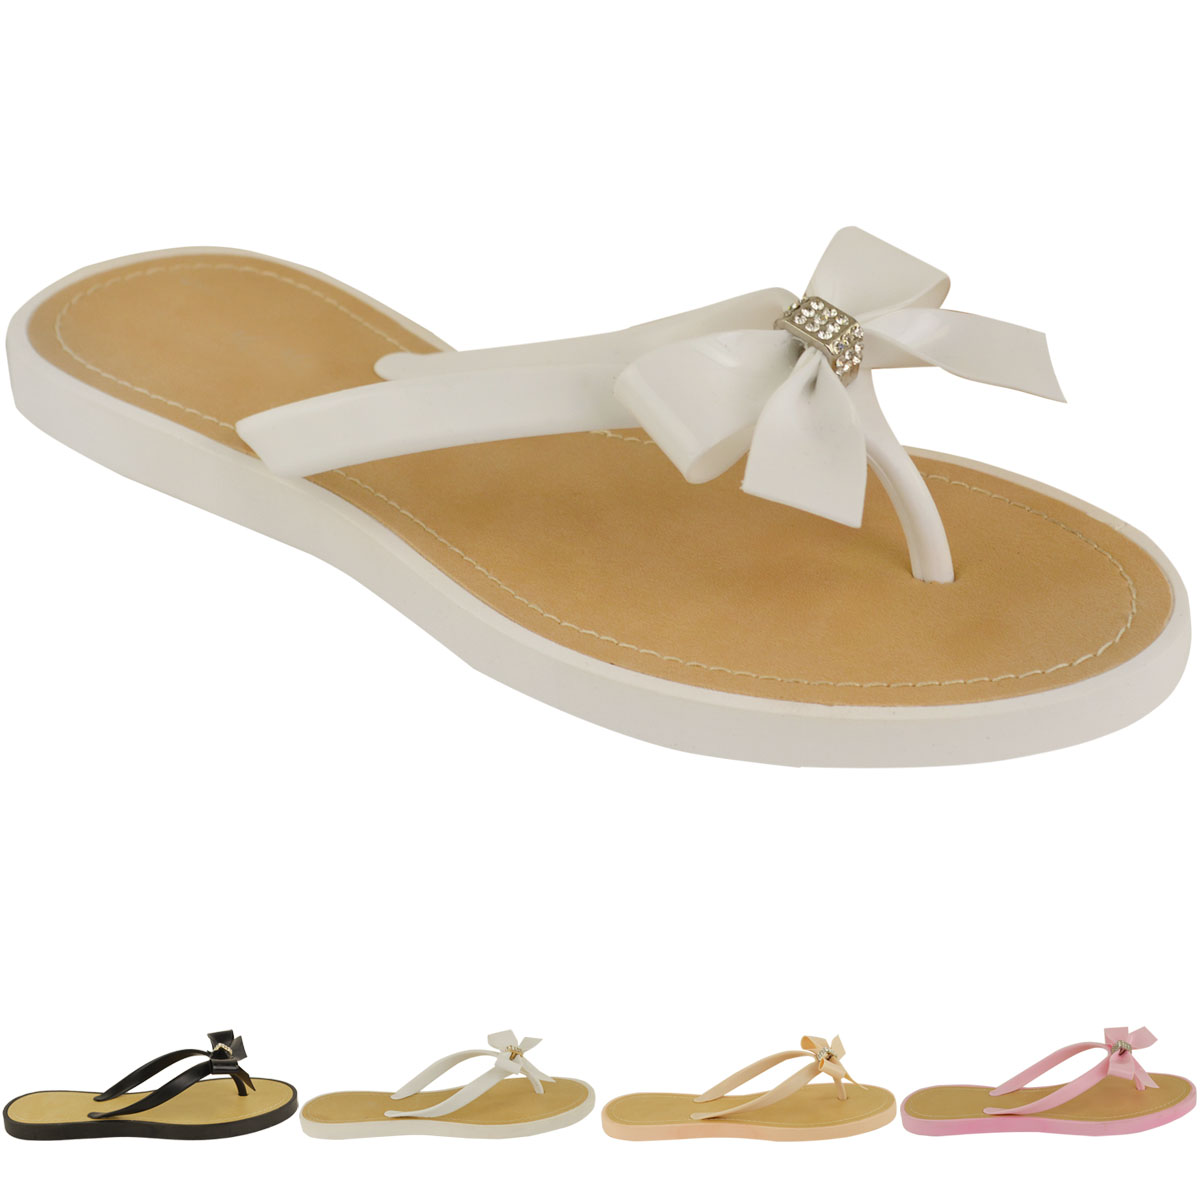 Popular Women Sandals Platform Beach Sandals Women Genuine Leather Shoes Women